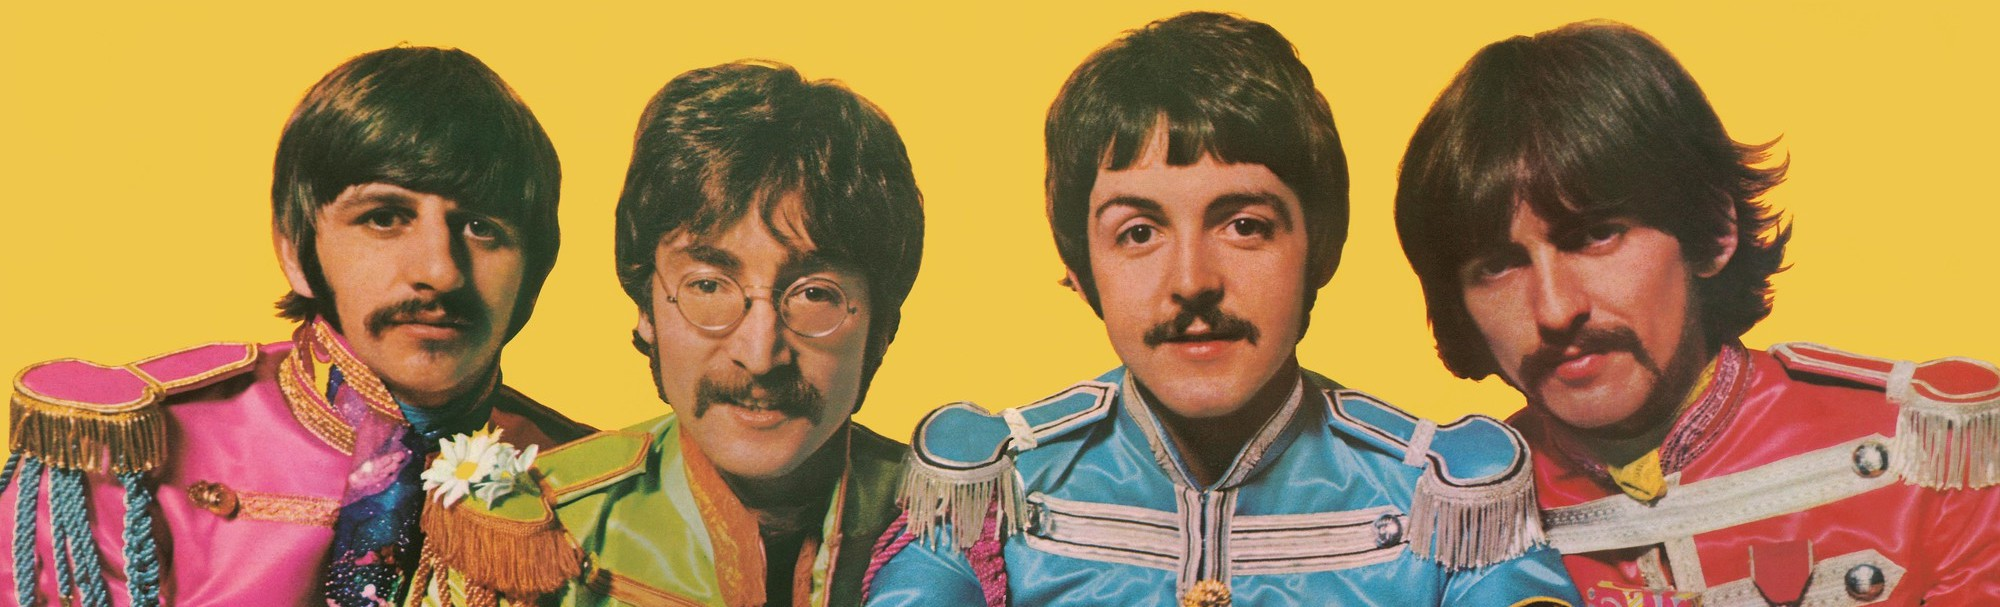 Generating Beatles Lyrics With Machine Learning Towards